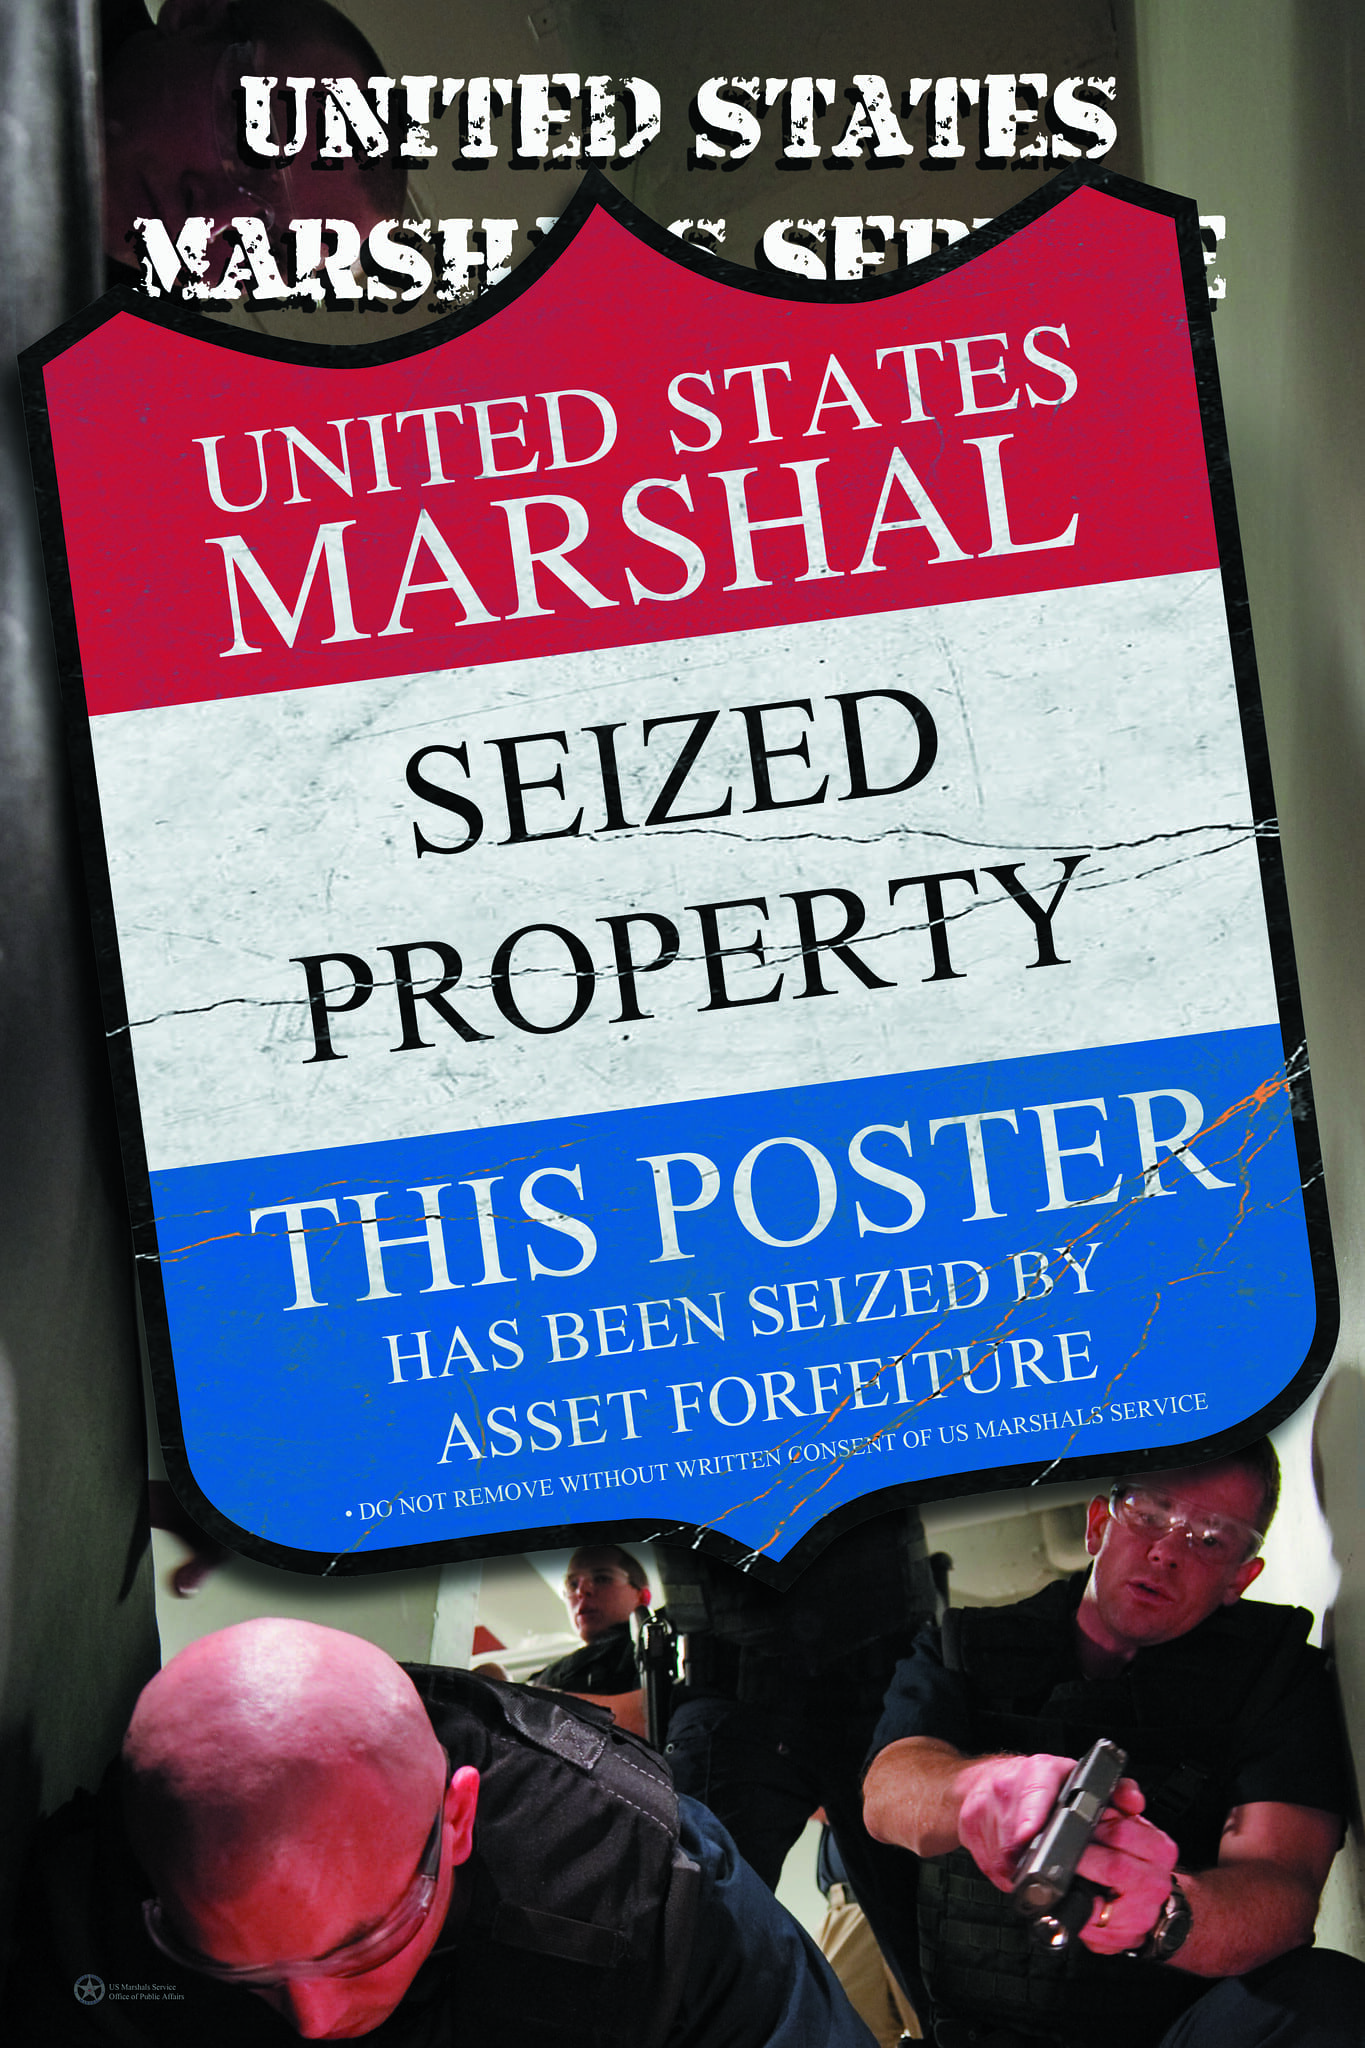 Use of forfeiture